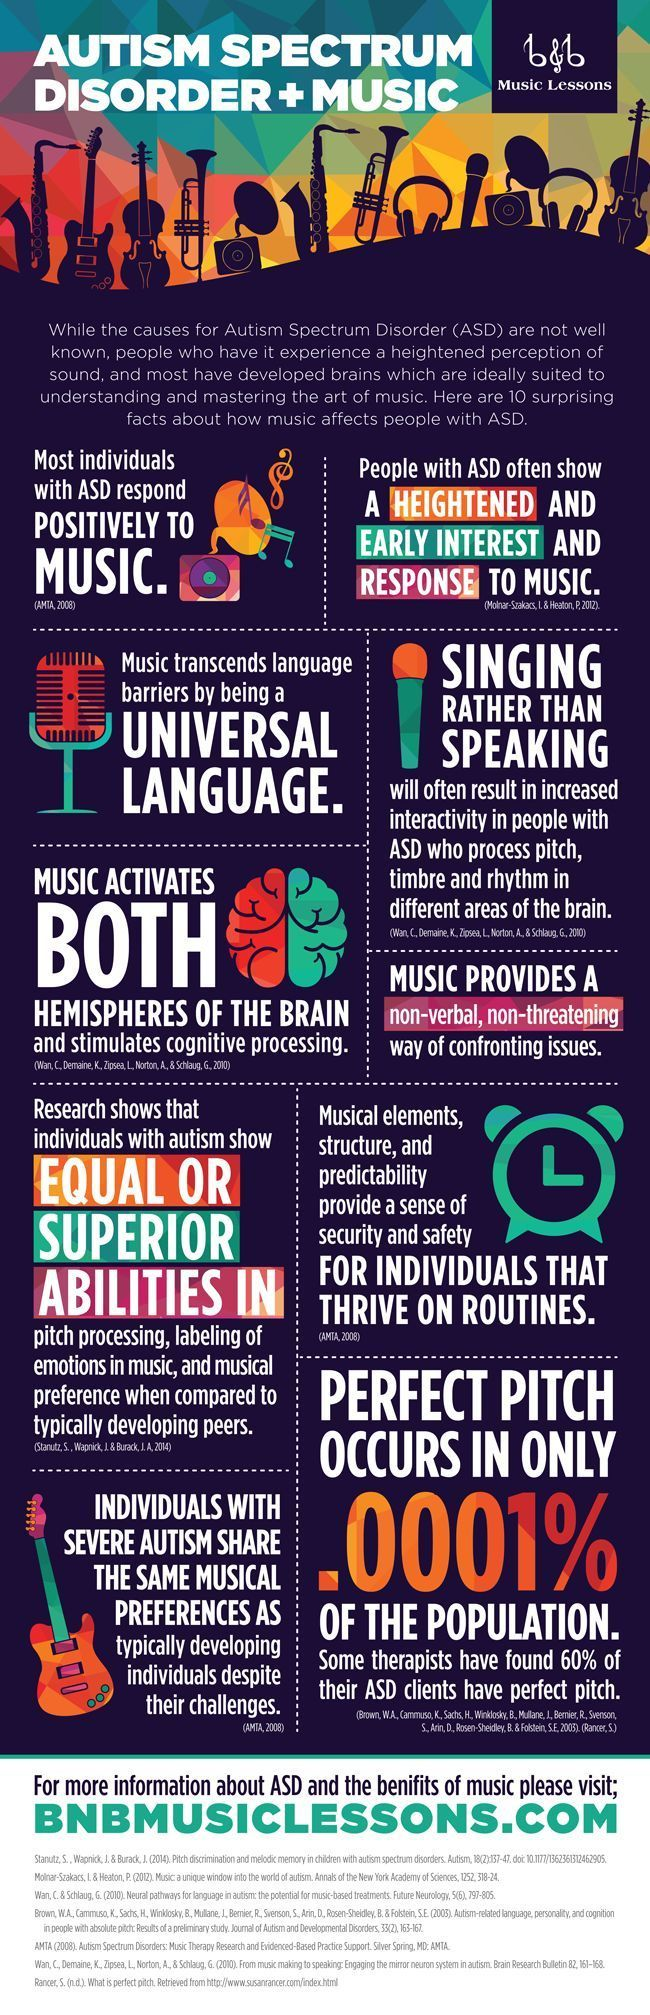 It has been shown how constructive music education is in all areas of cognitive development, but it also proves to be especially helpful to those with ASD.